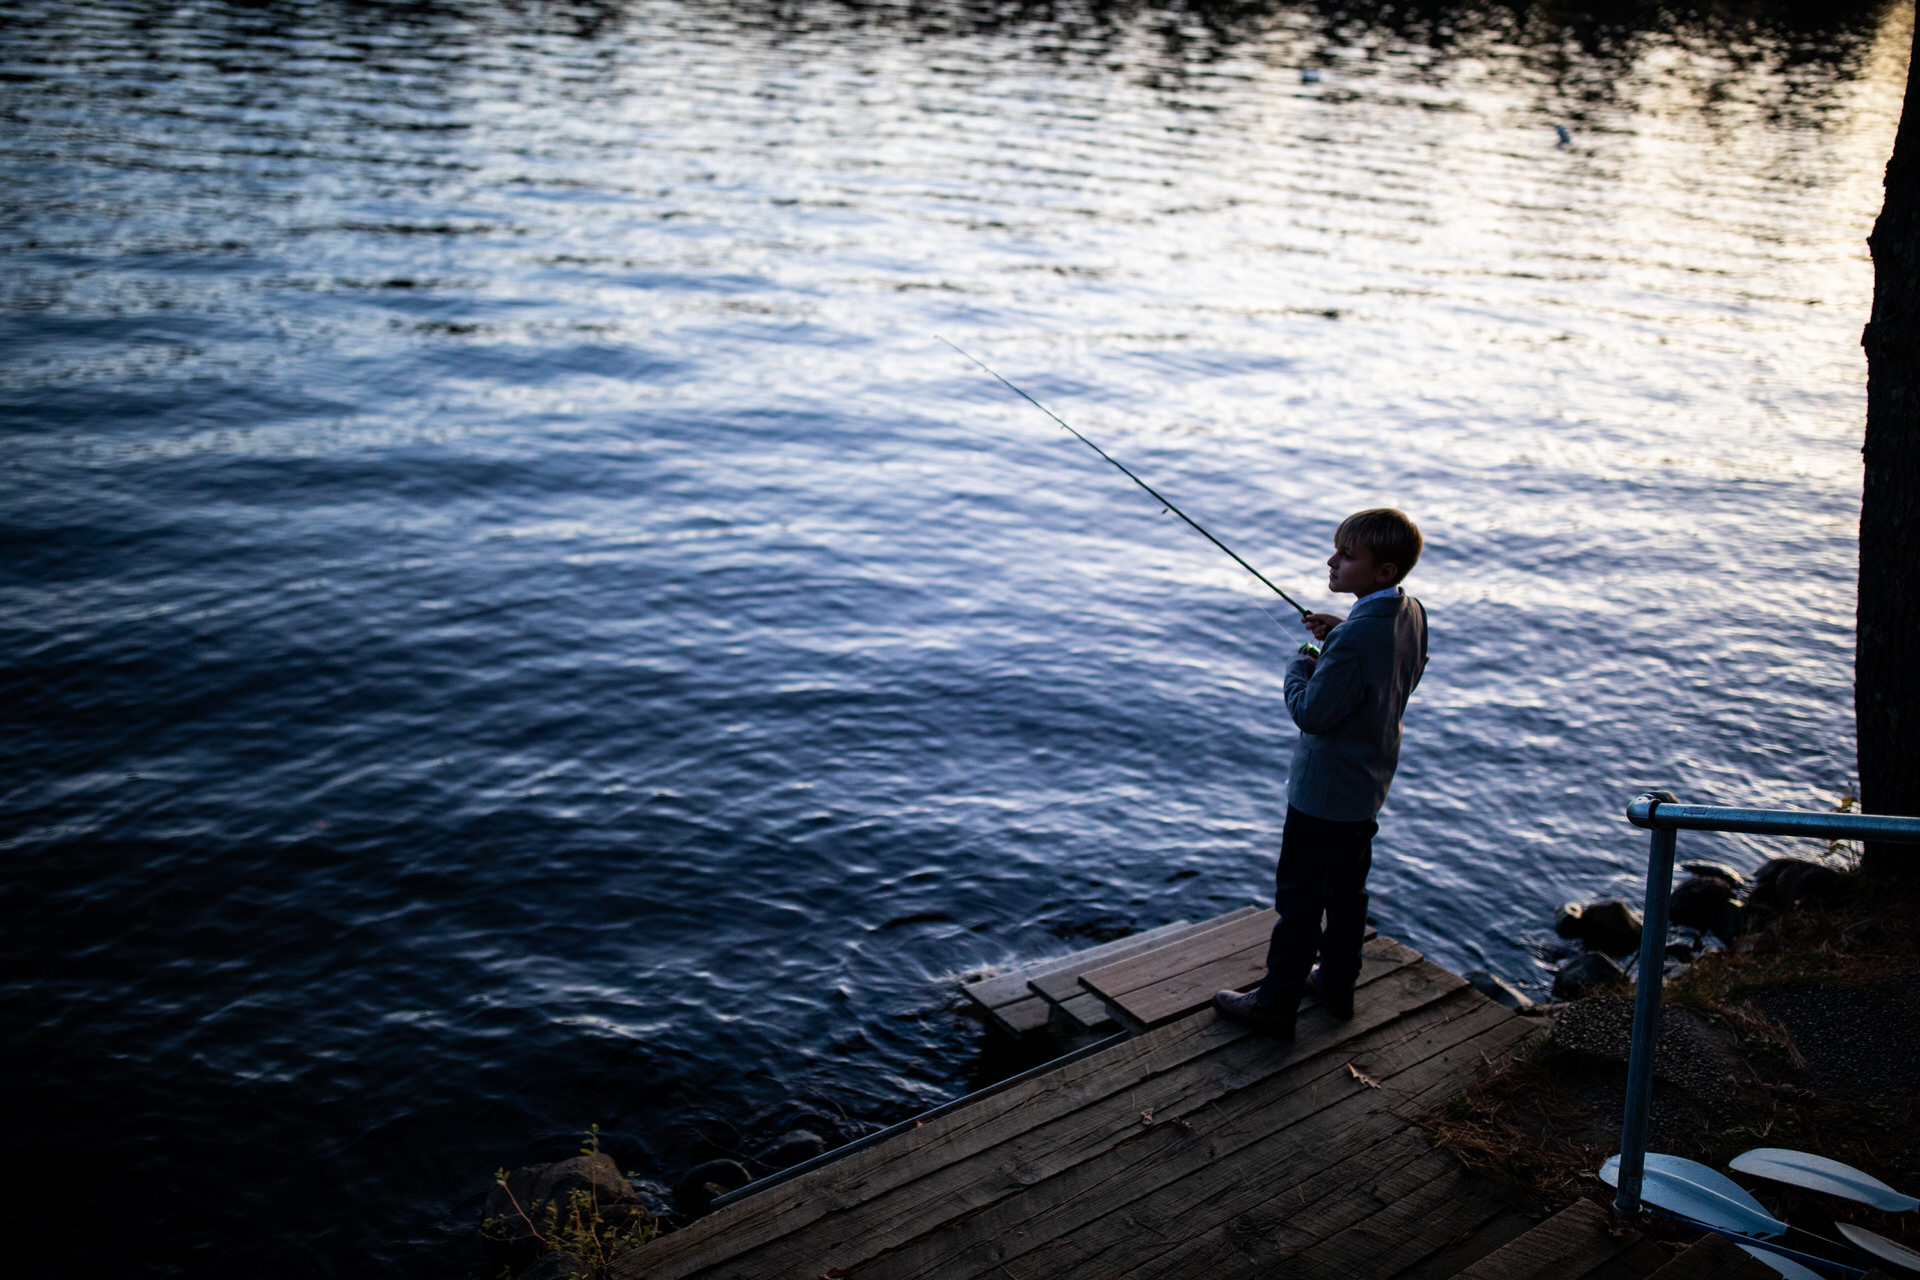 Elopement Reception Image from Balsam Lake, Wisconsin   A kid fishing on the lake.